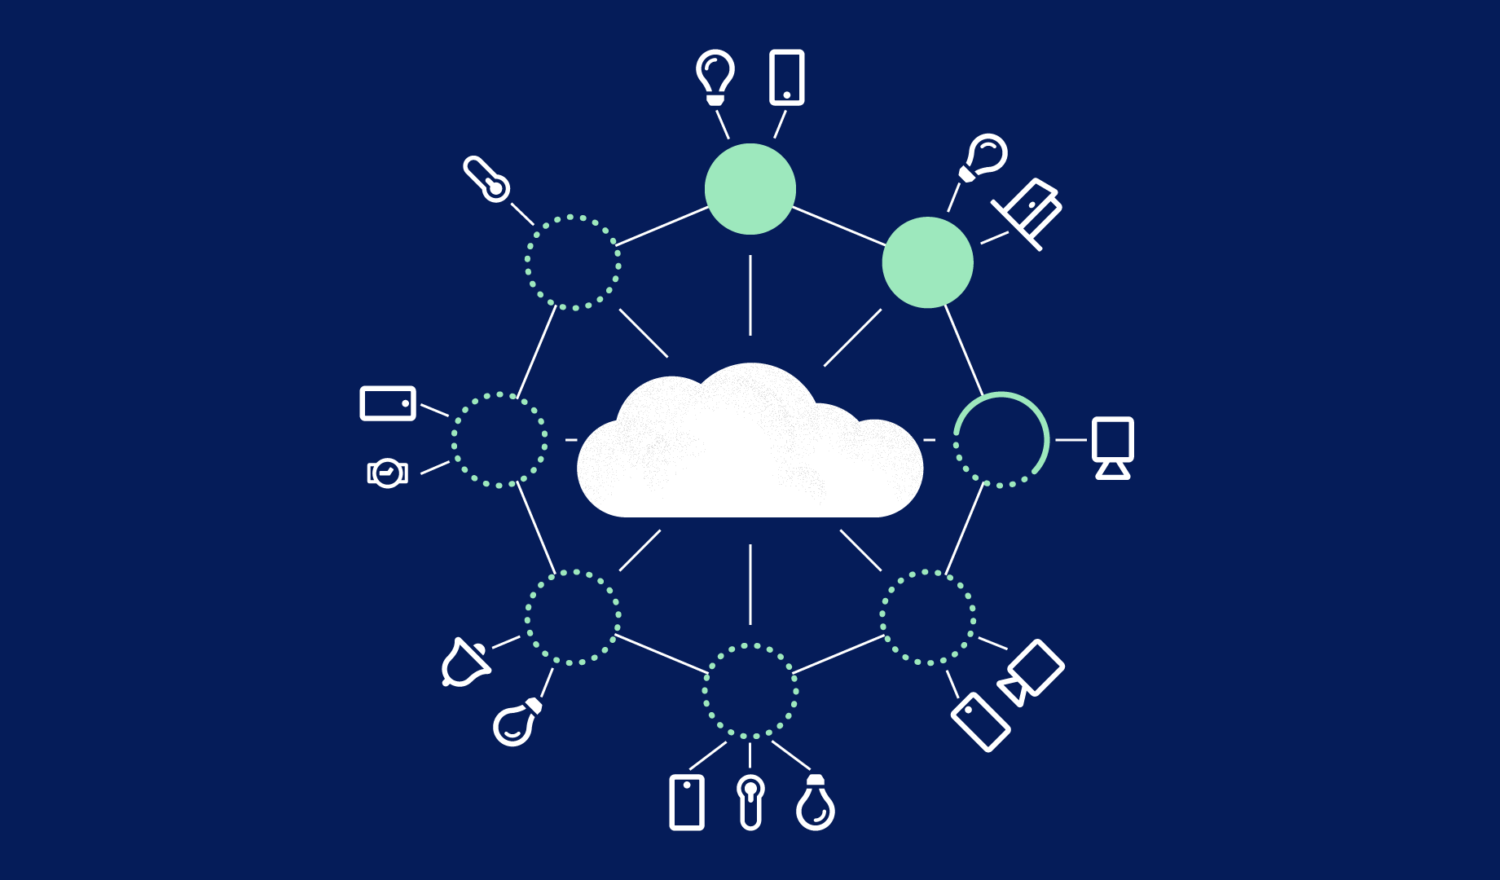 IoT Edge devices manifesting around a cloud